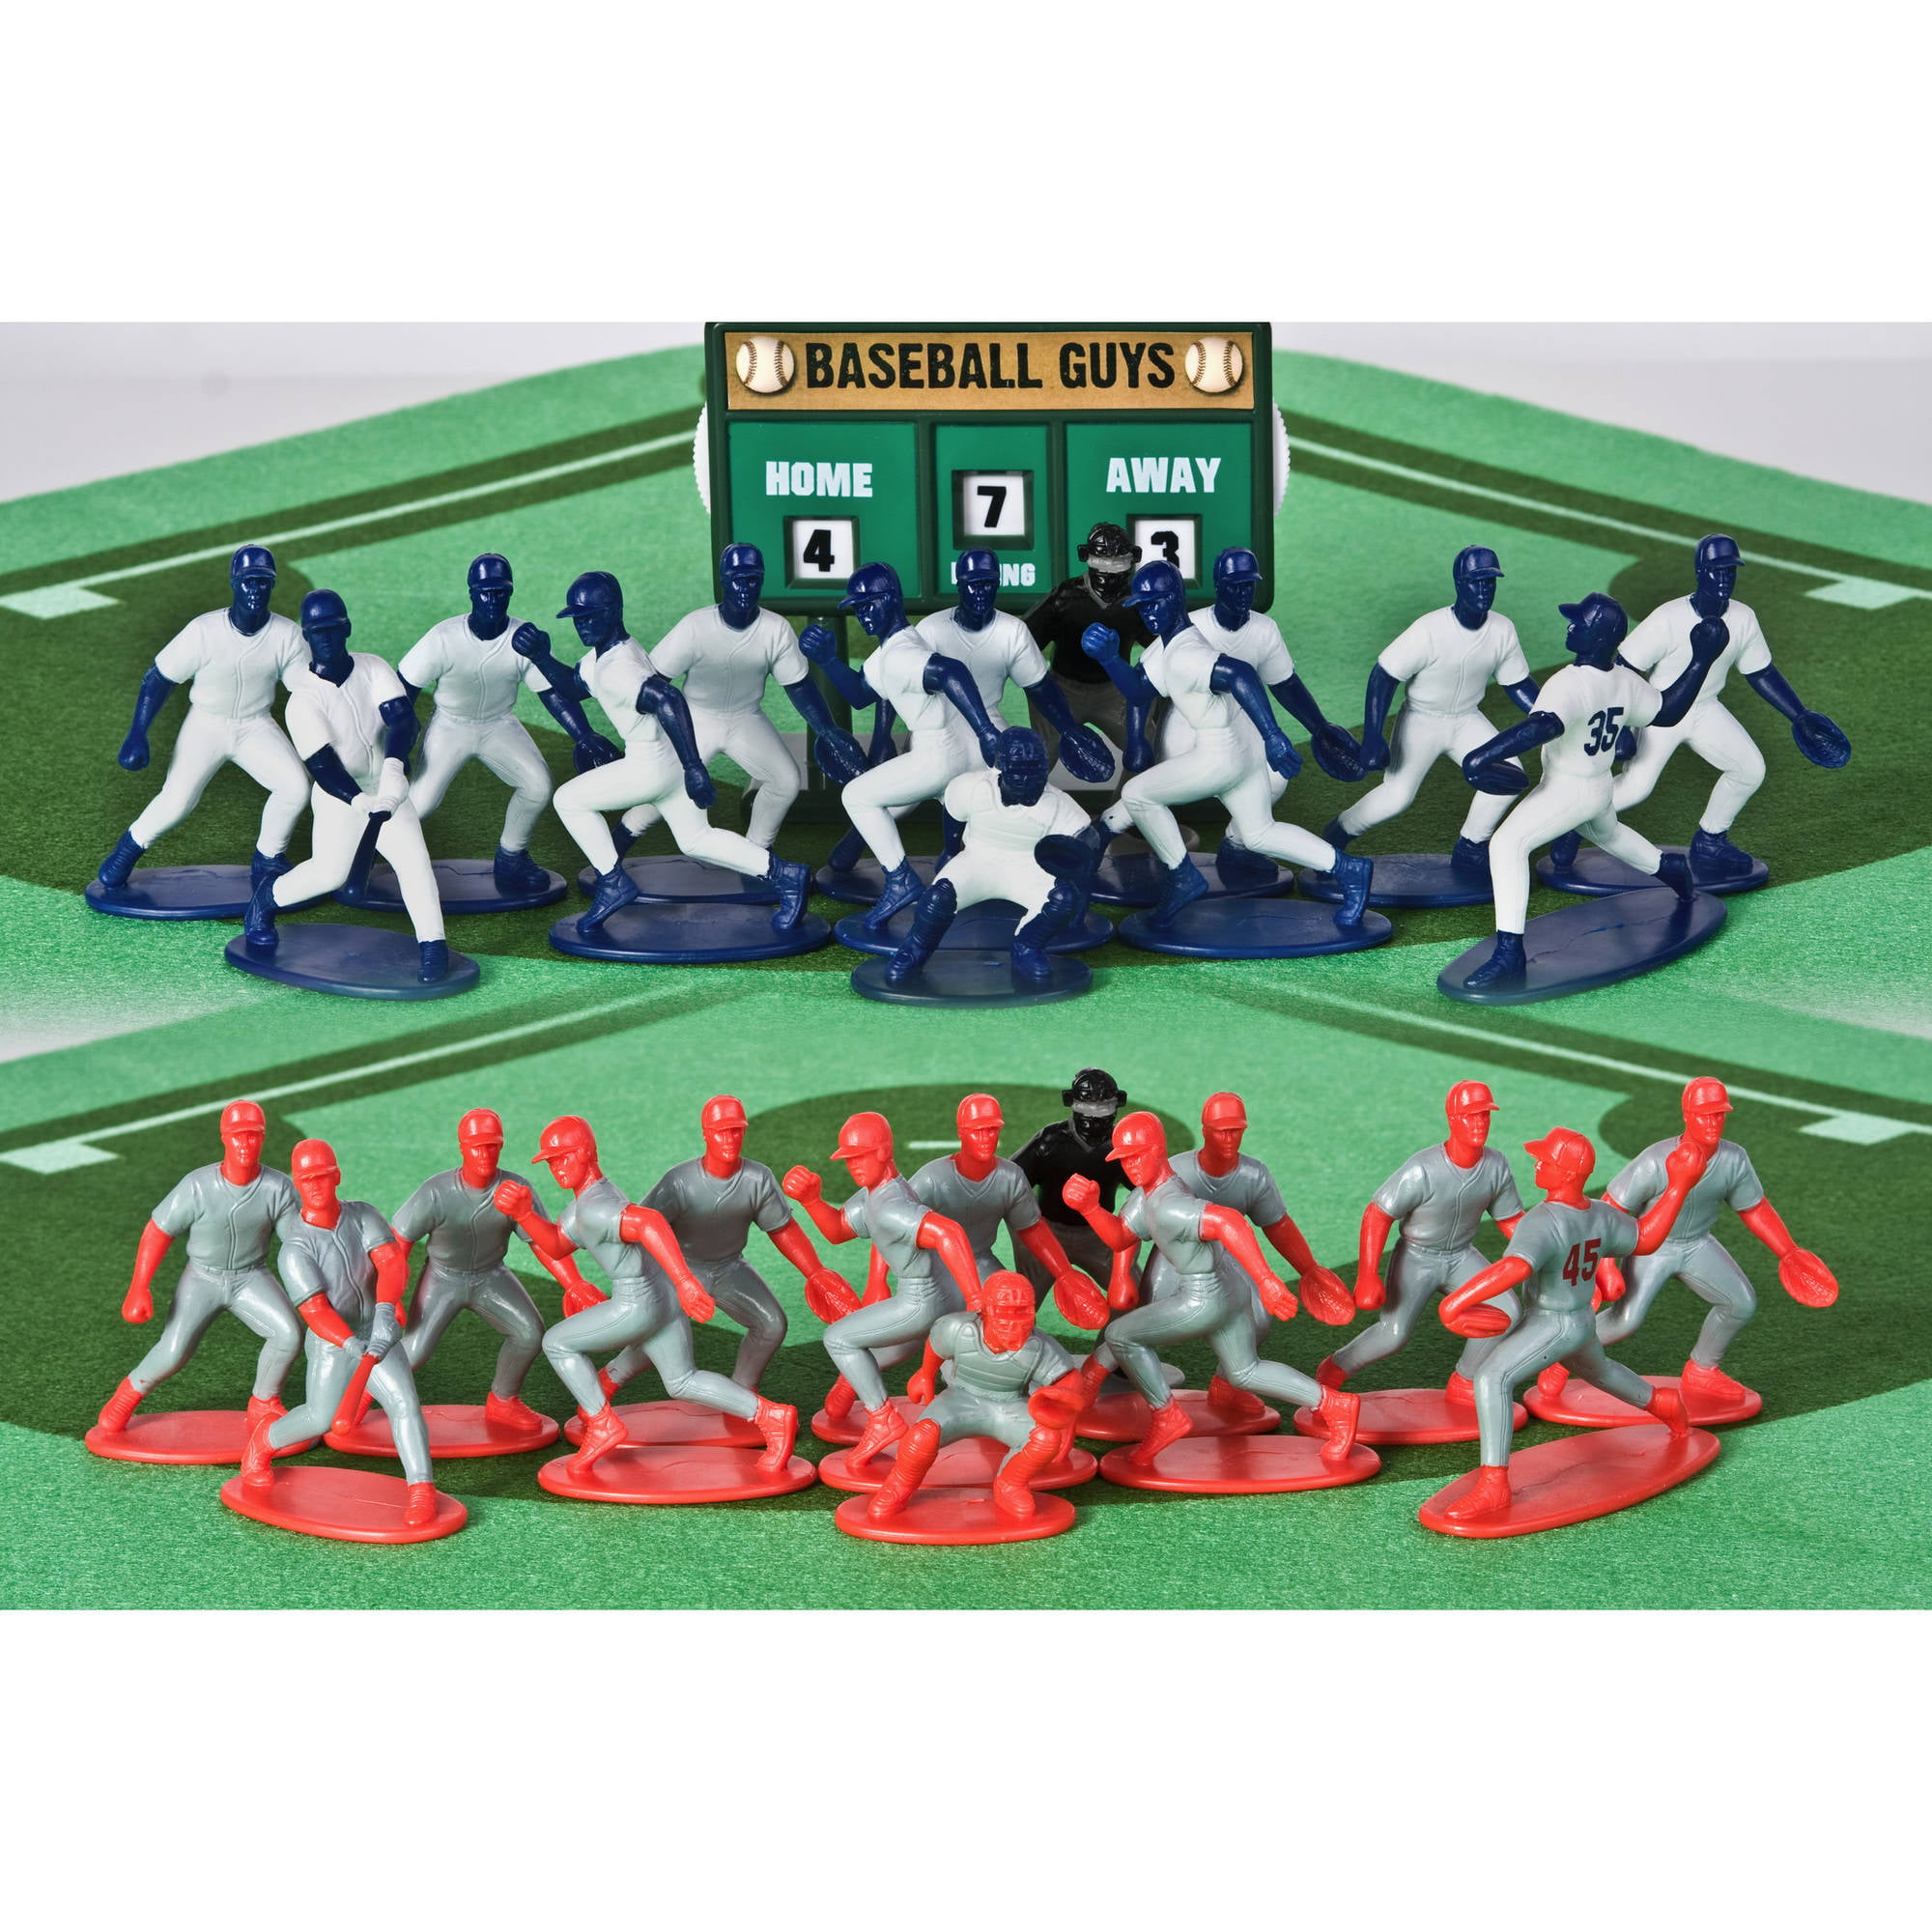 Kaskey Kids Baseball Guys Set Walmart